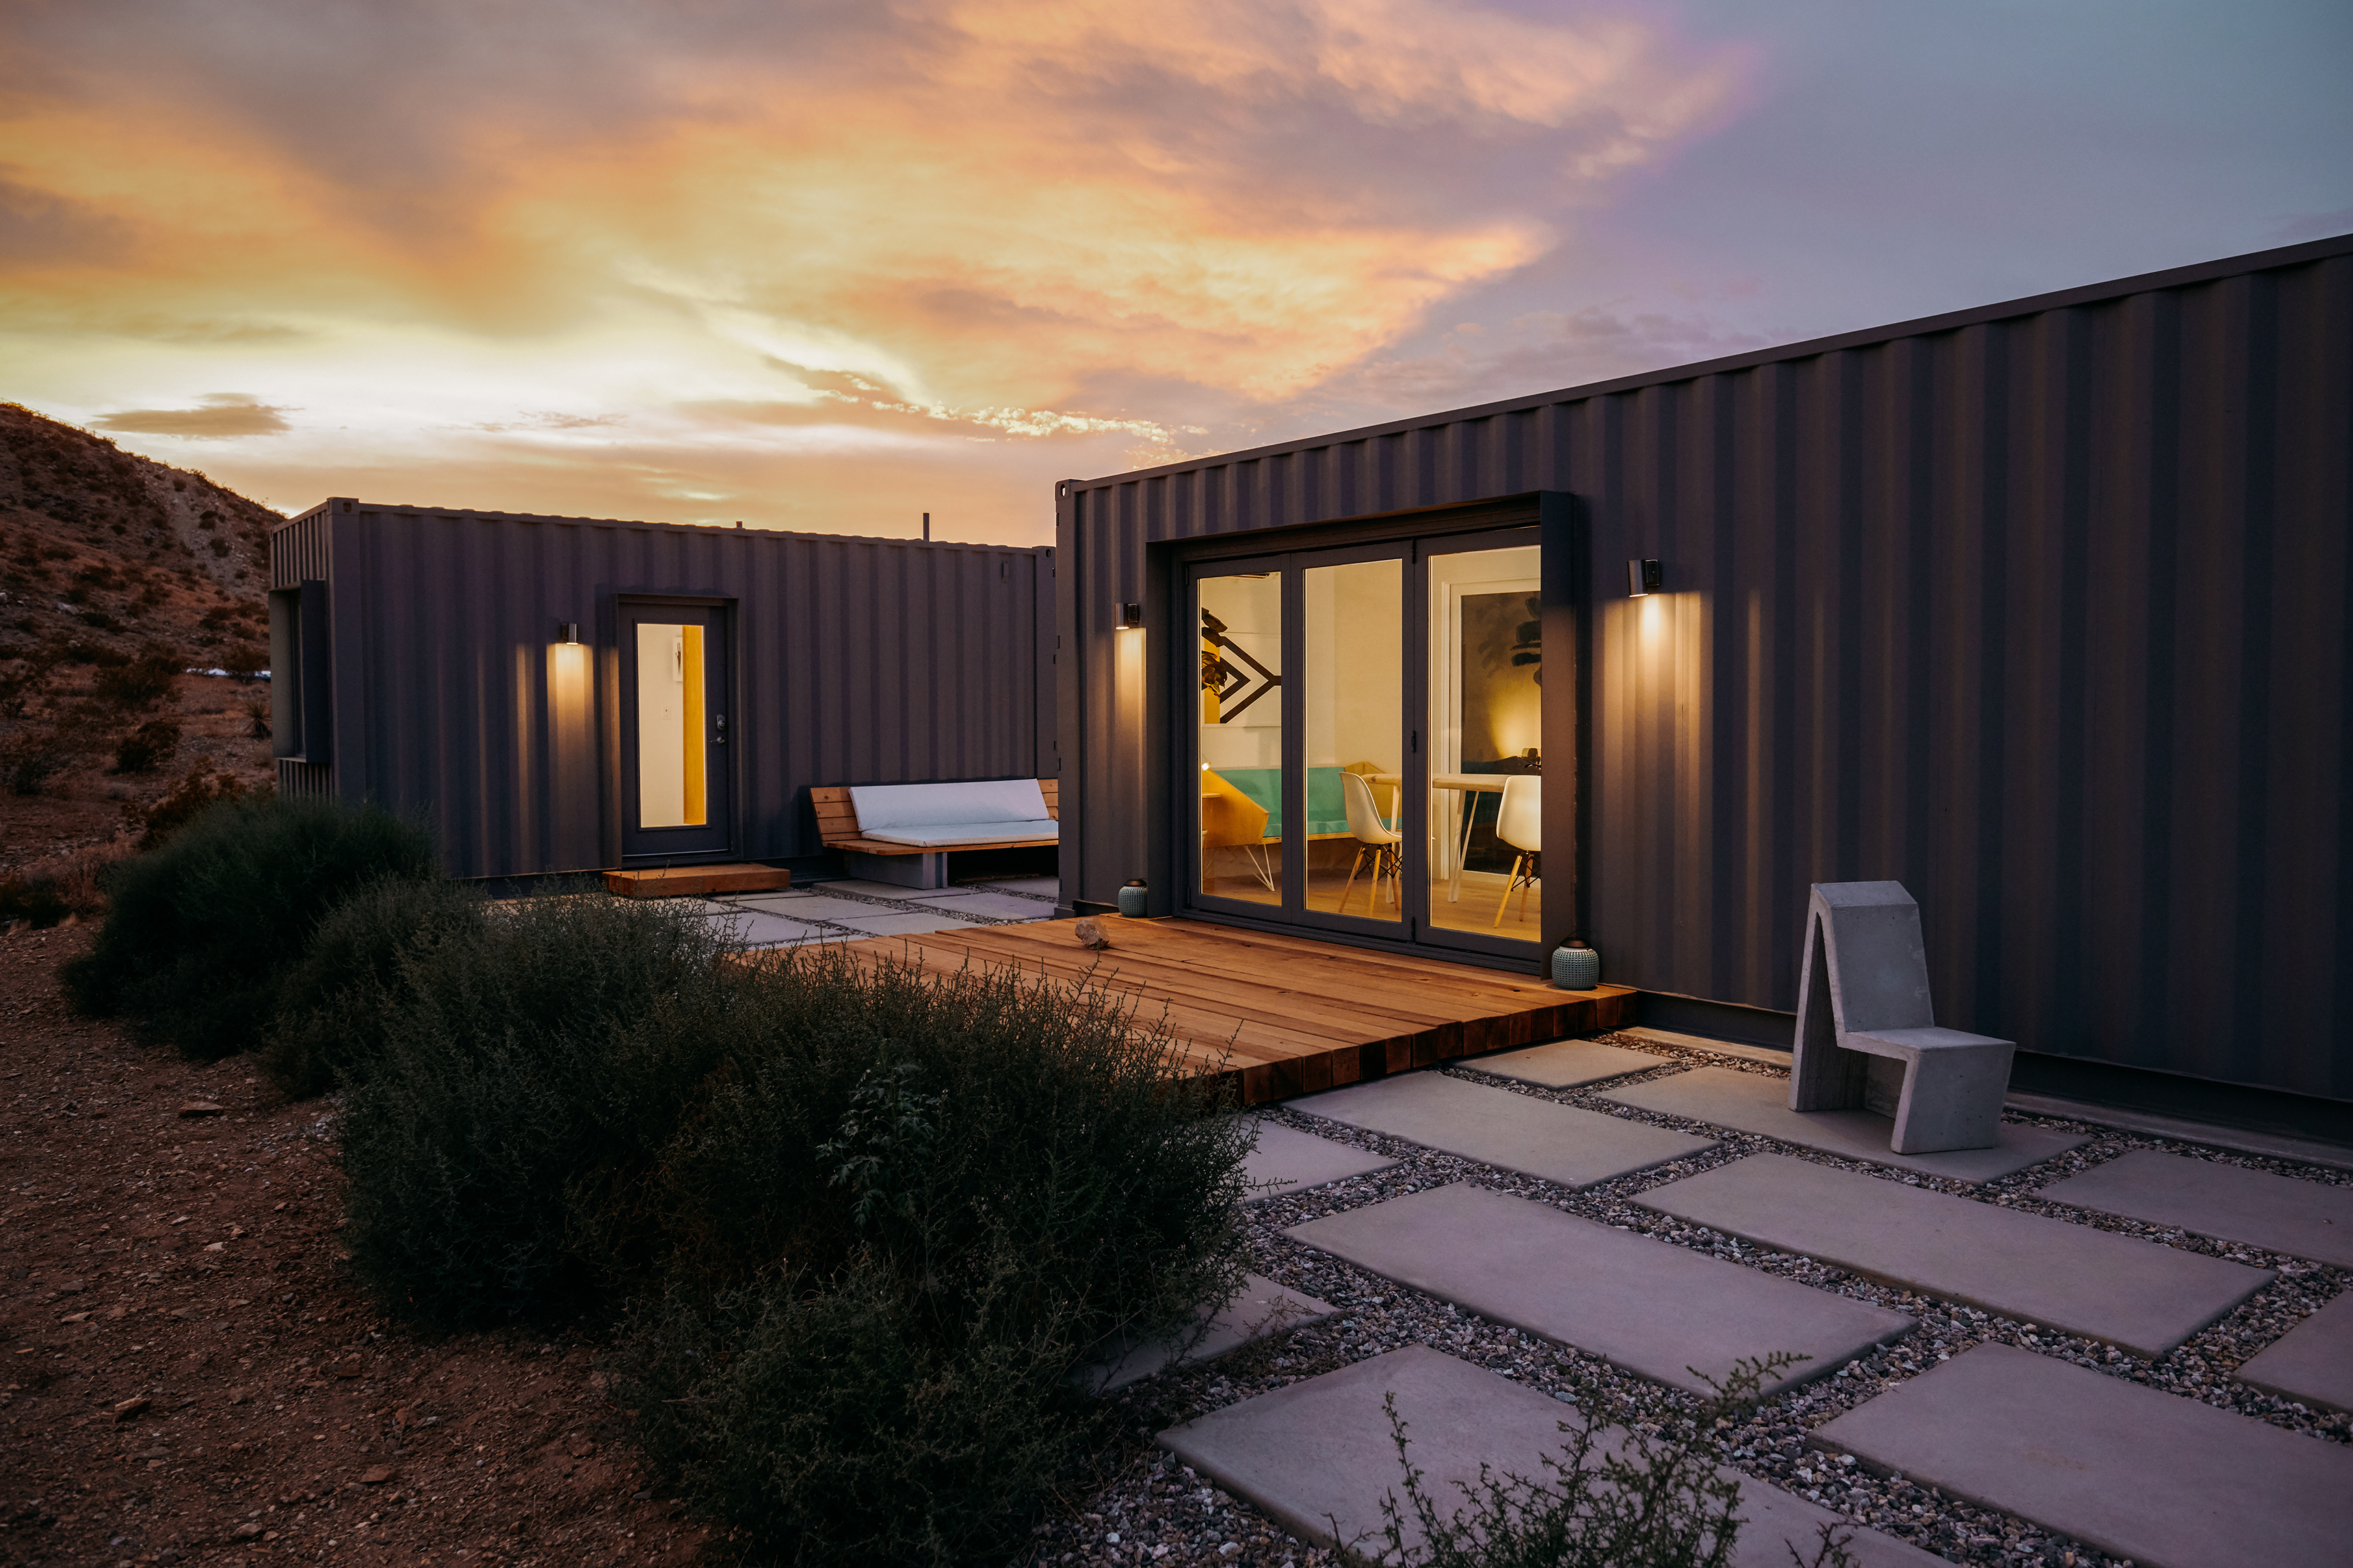 Shipping container home in Joshua Tree, CA